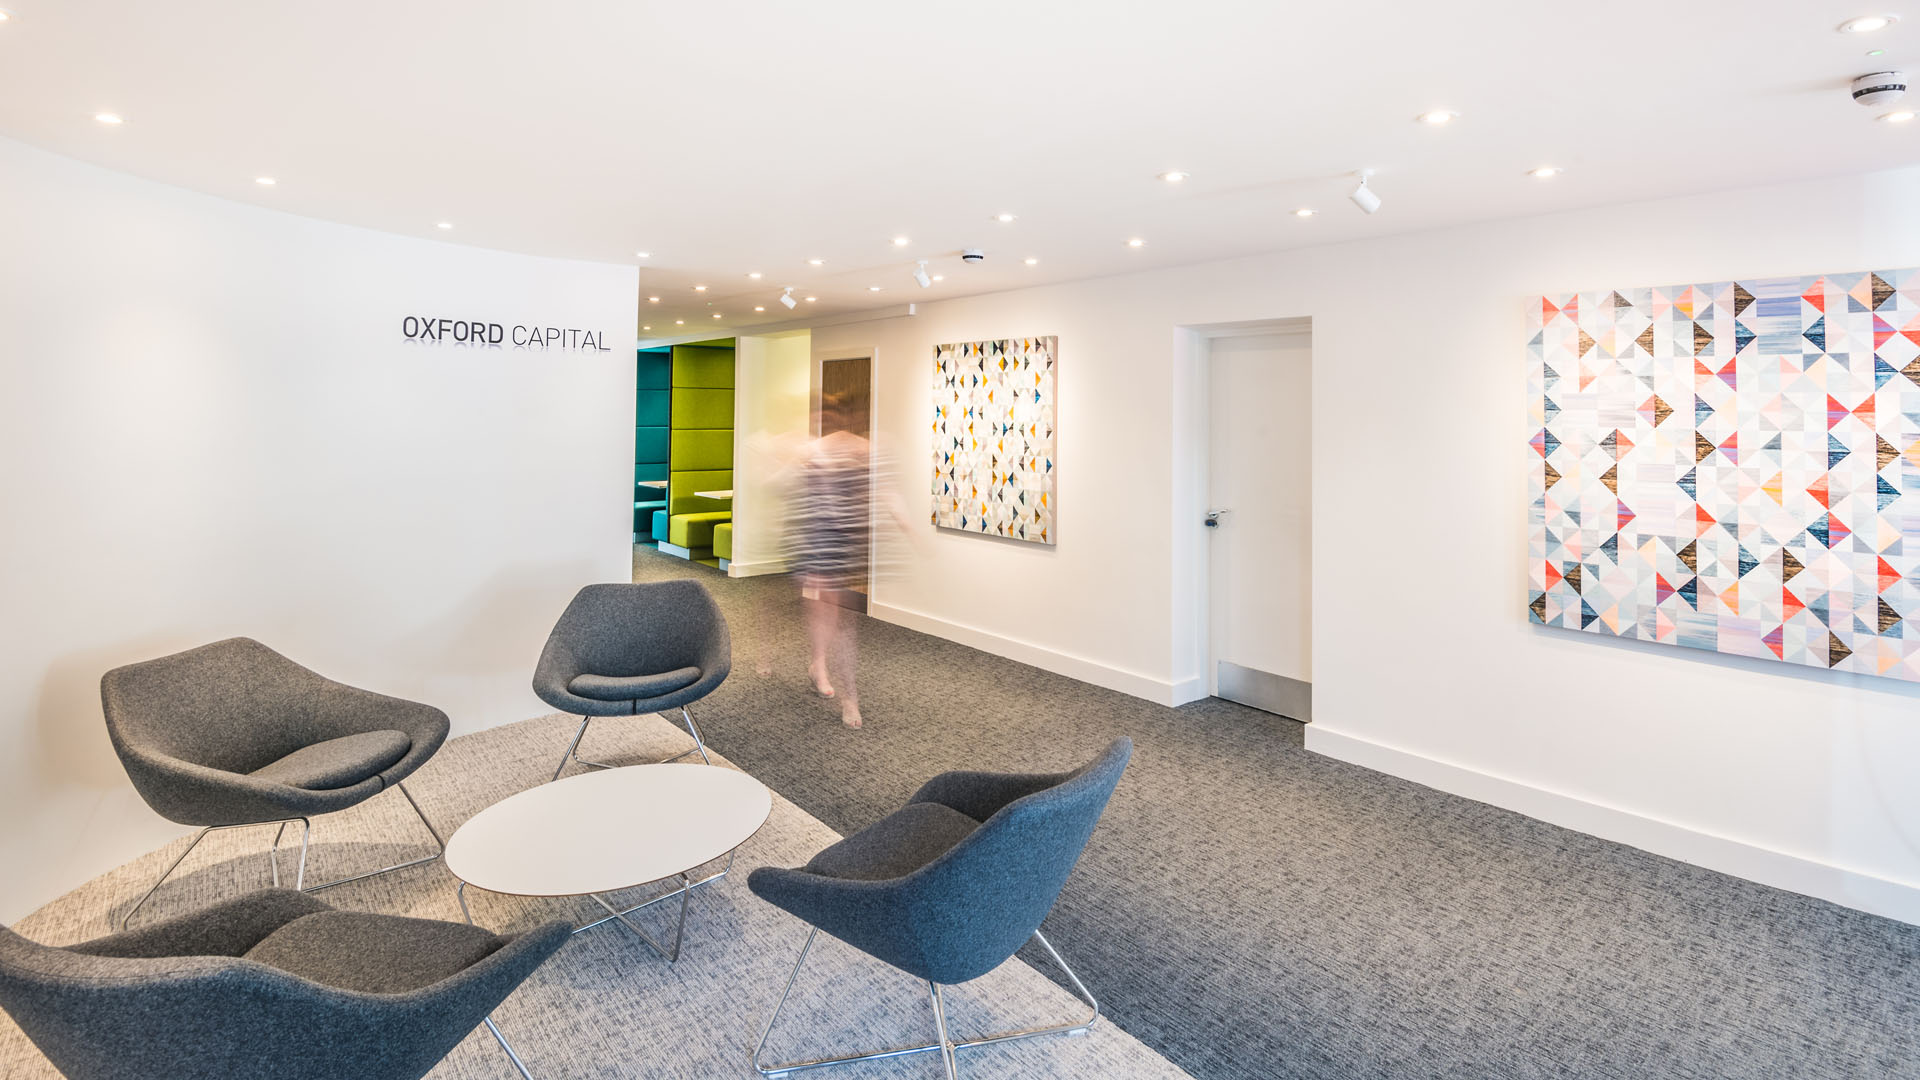 Oxford Capital – Reception